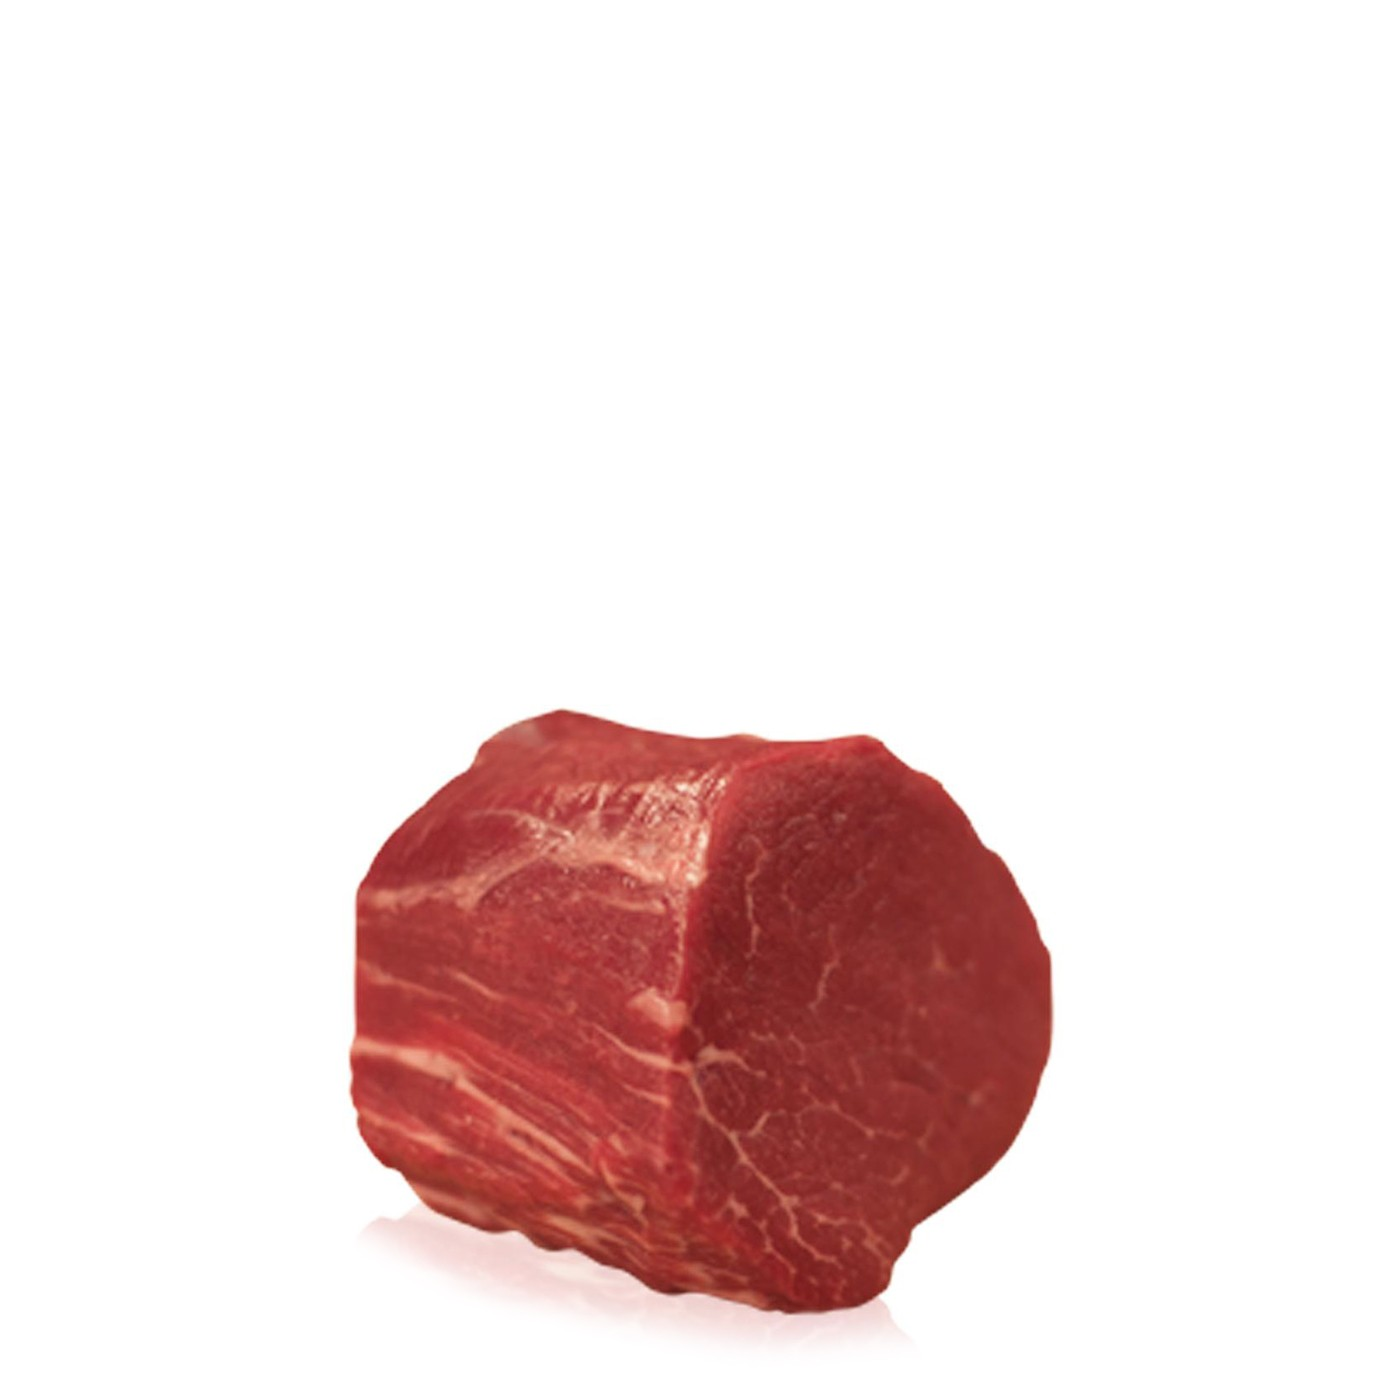 Prime Black Angus Beef Filet Mignon 4 Steaks, 8 oz each